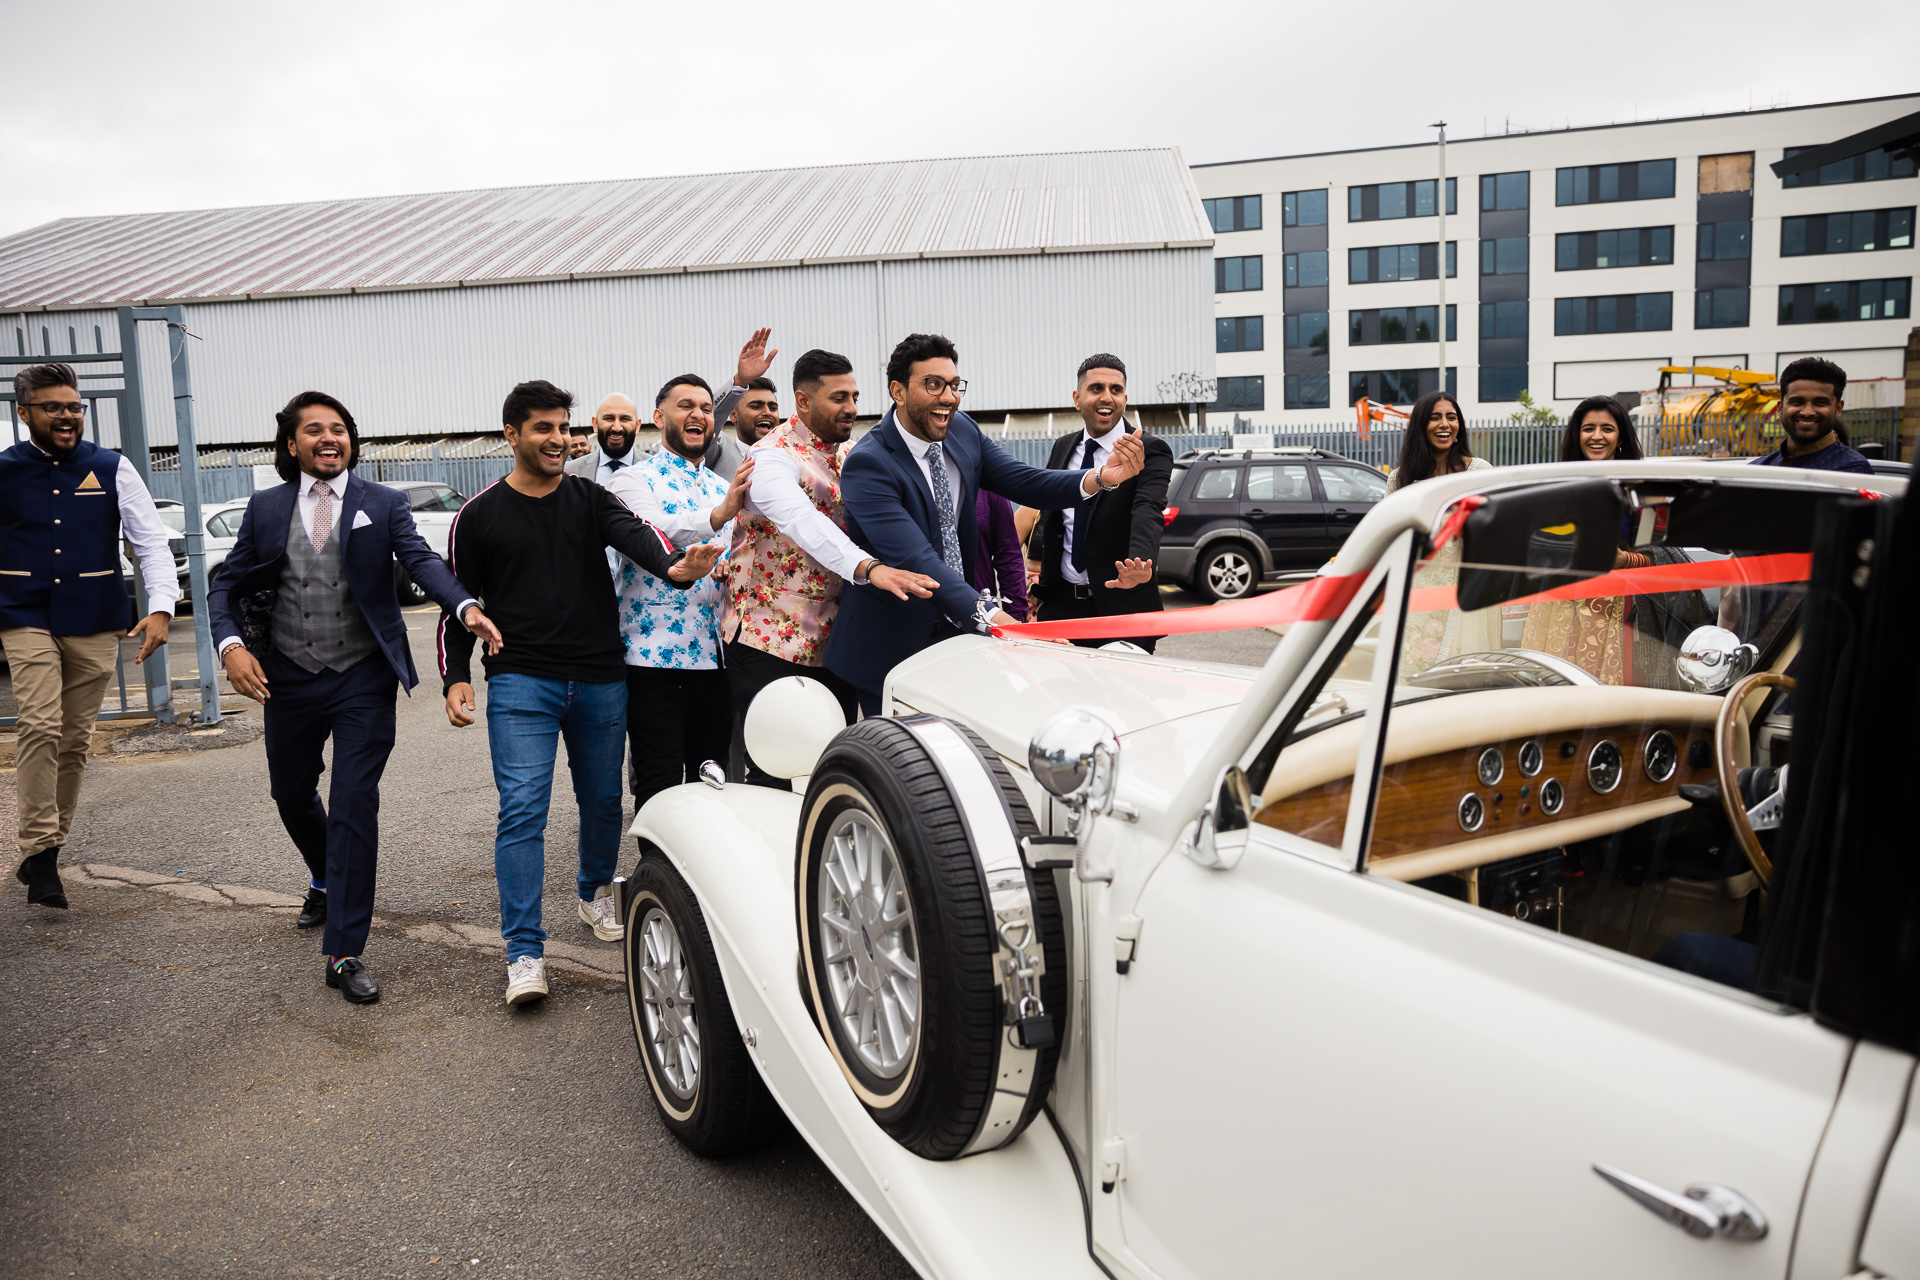 Groom's friends stopping the car